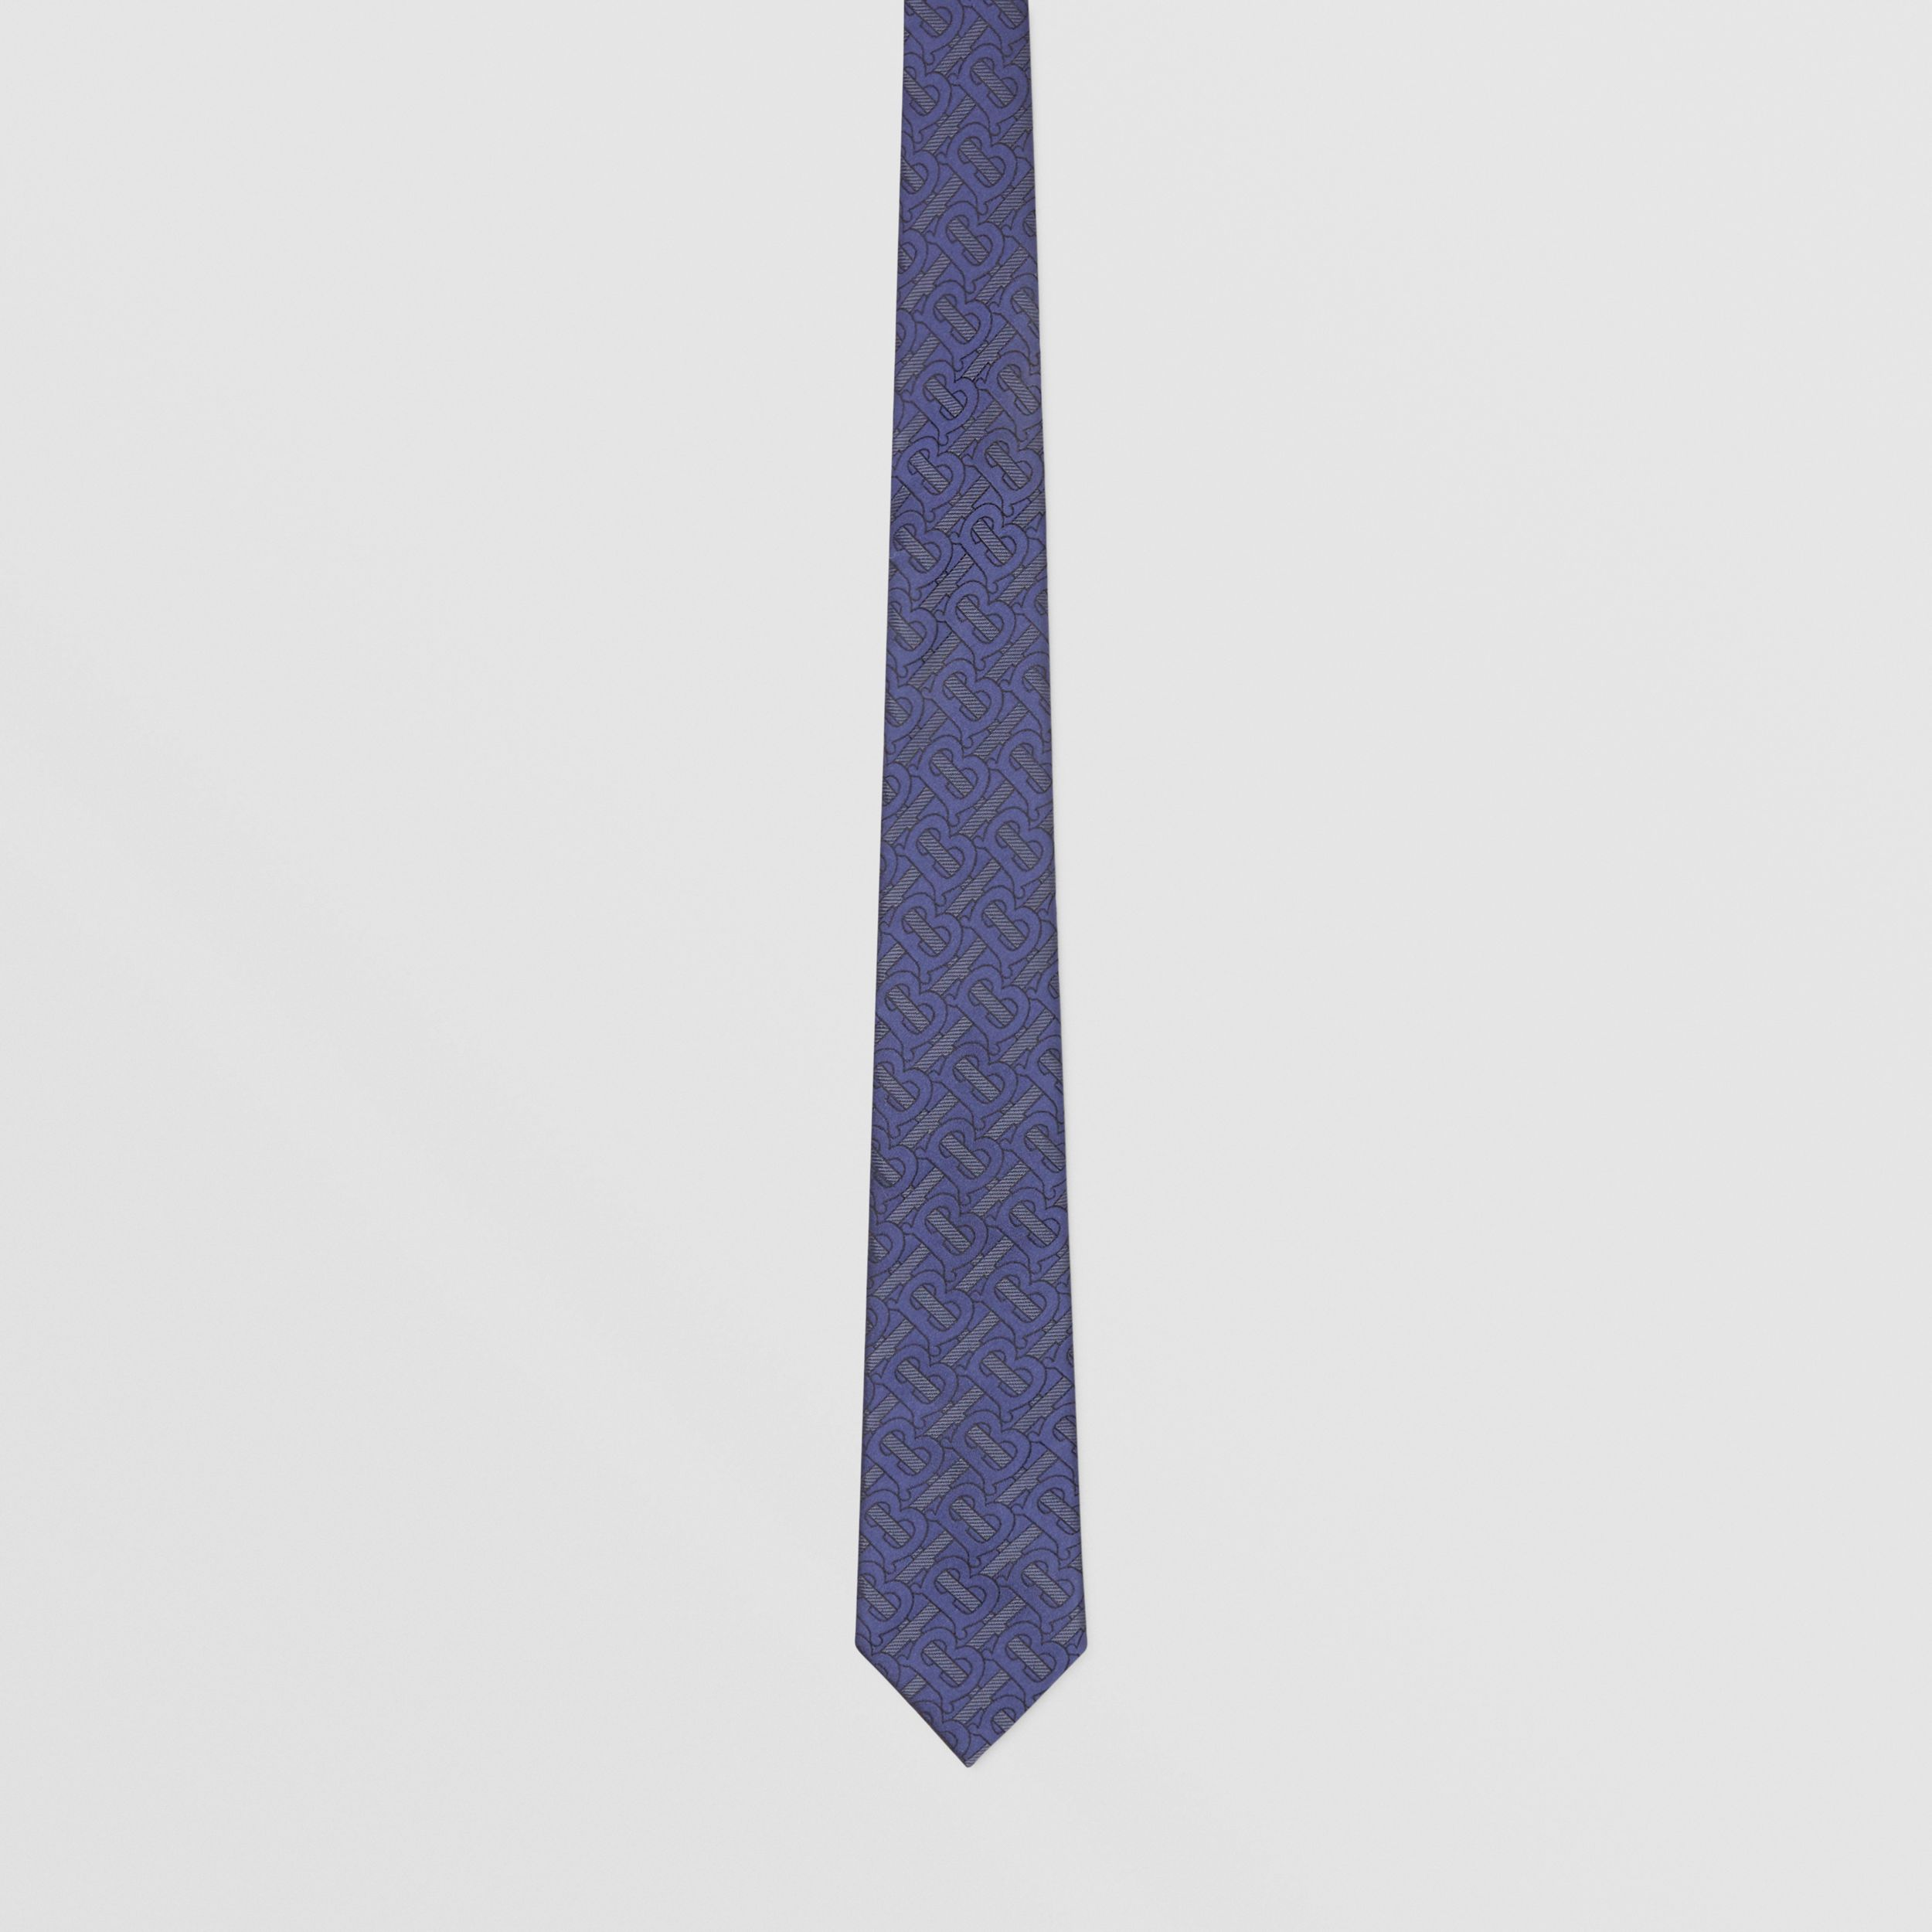 Classic Cut Monogram Silk Blend Jacquard Tie in Bright Indigo - Men | Burberry - 4